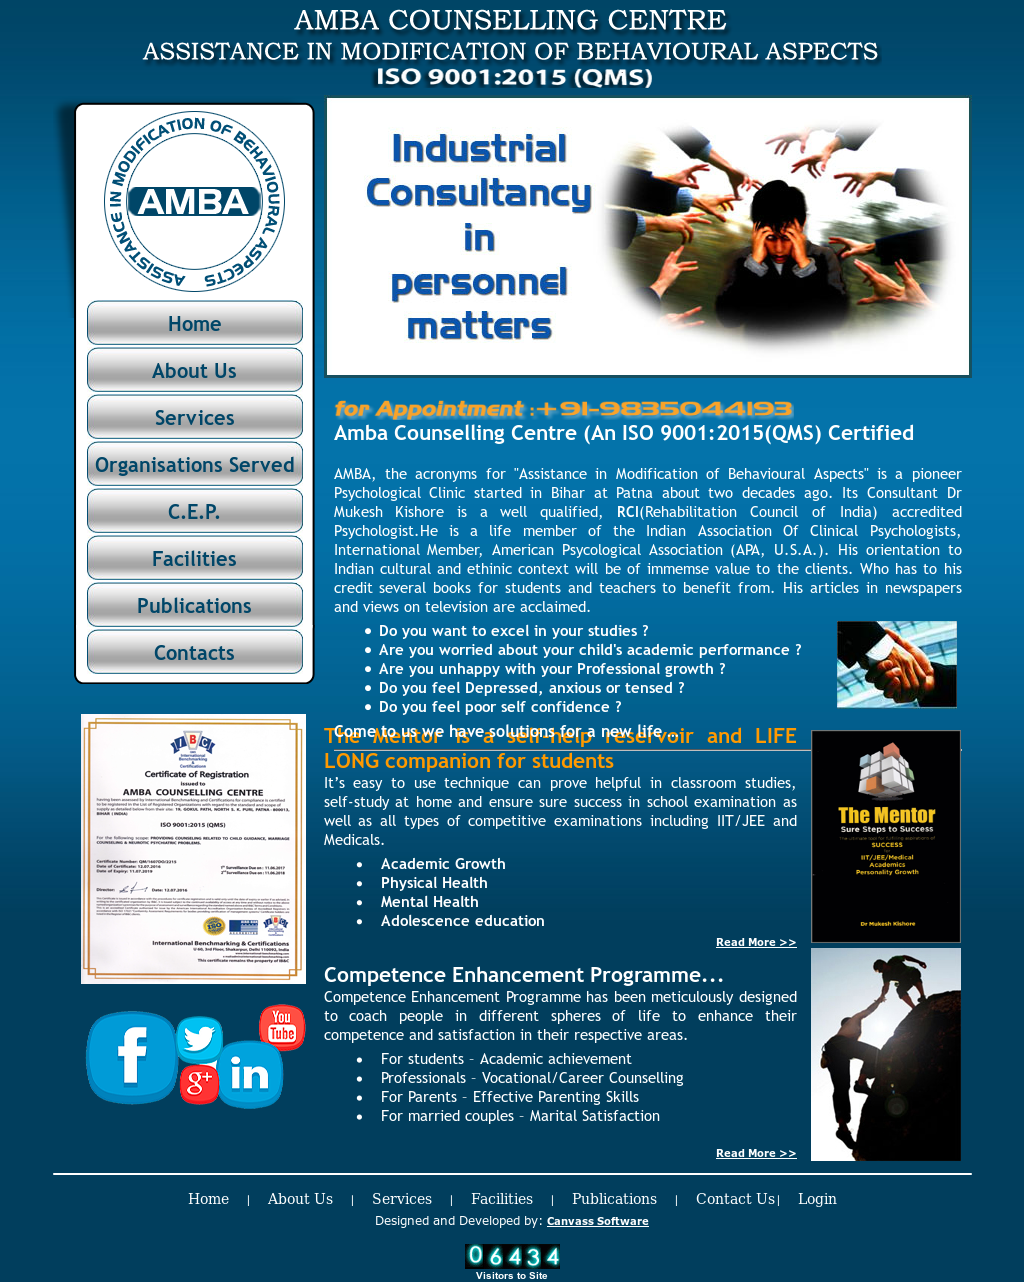 Amba Counselling Centre Competitors, Revenue and Employees